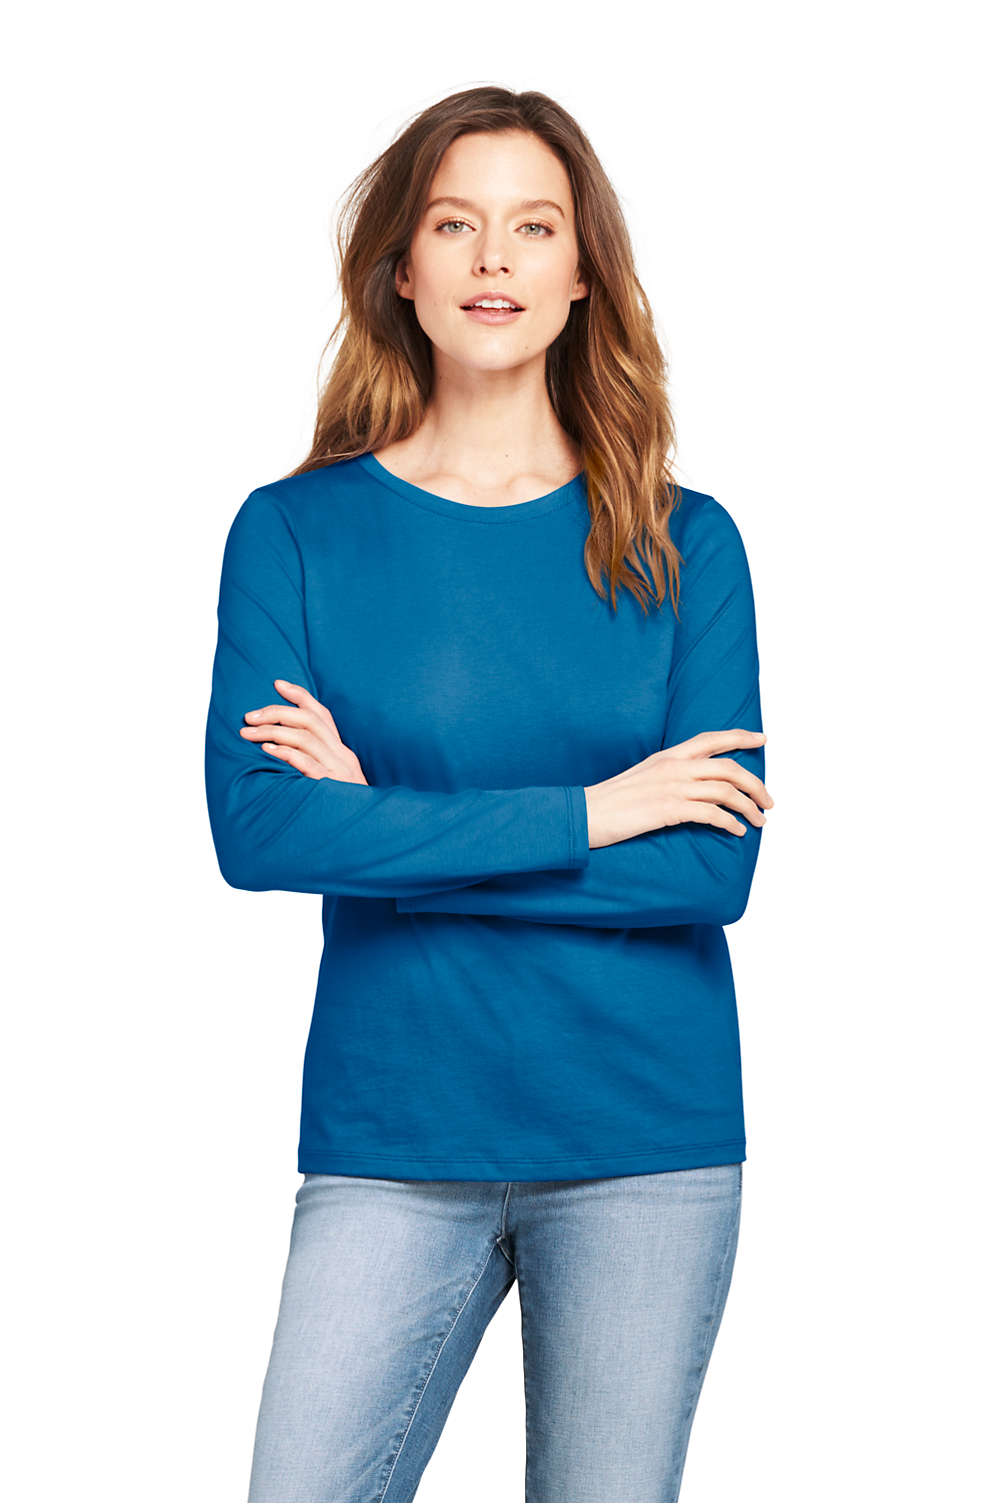 fefd6ae30e23 Women's Supima Cotton Long Sleeve T-shirt - Relaxed Crewneck from ...